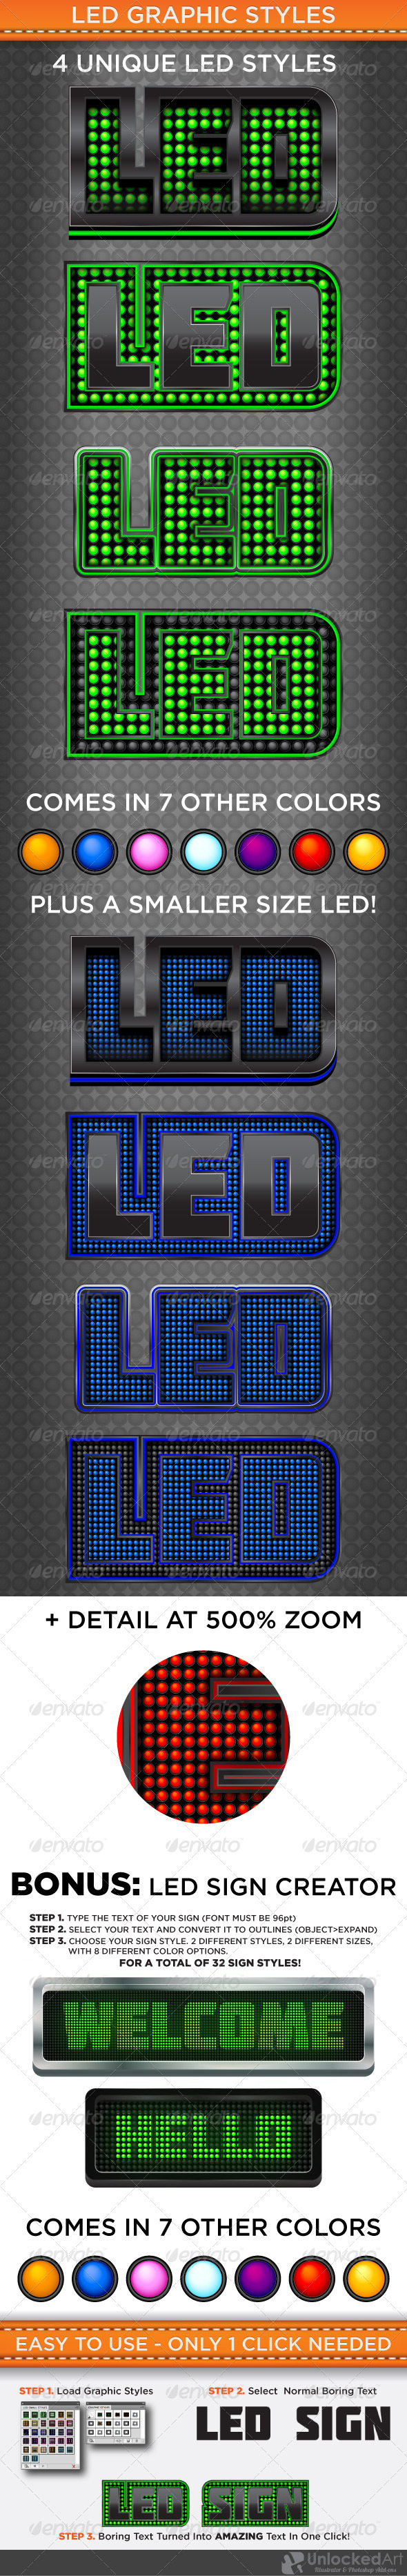 GraphicRiver LED Graphic Styles 4759786